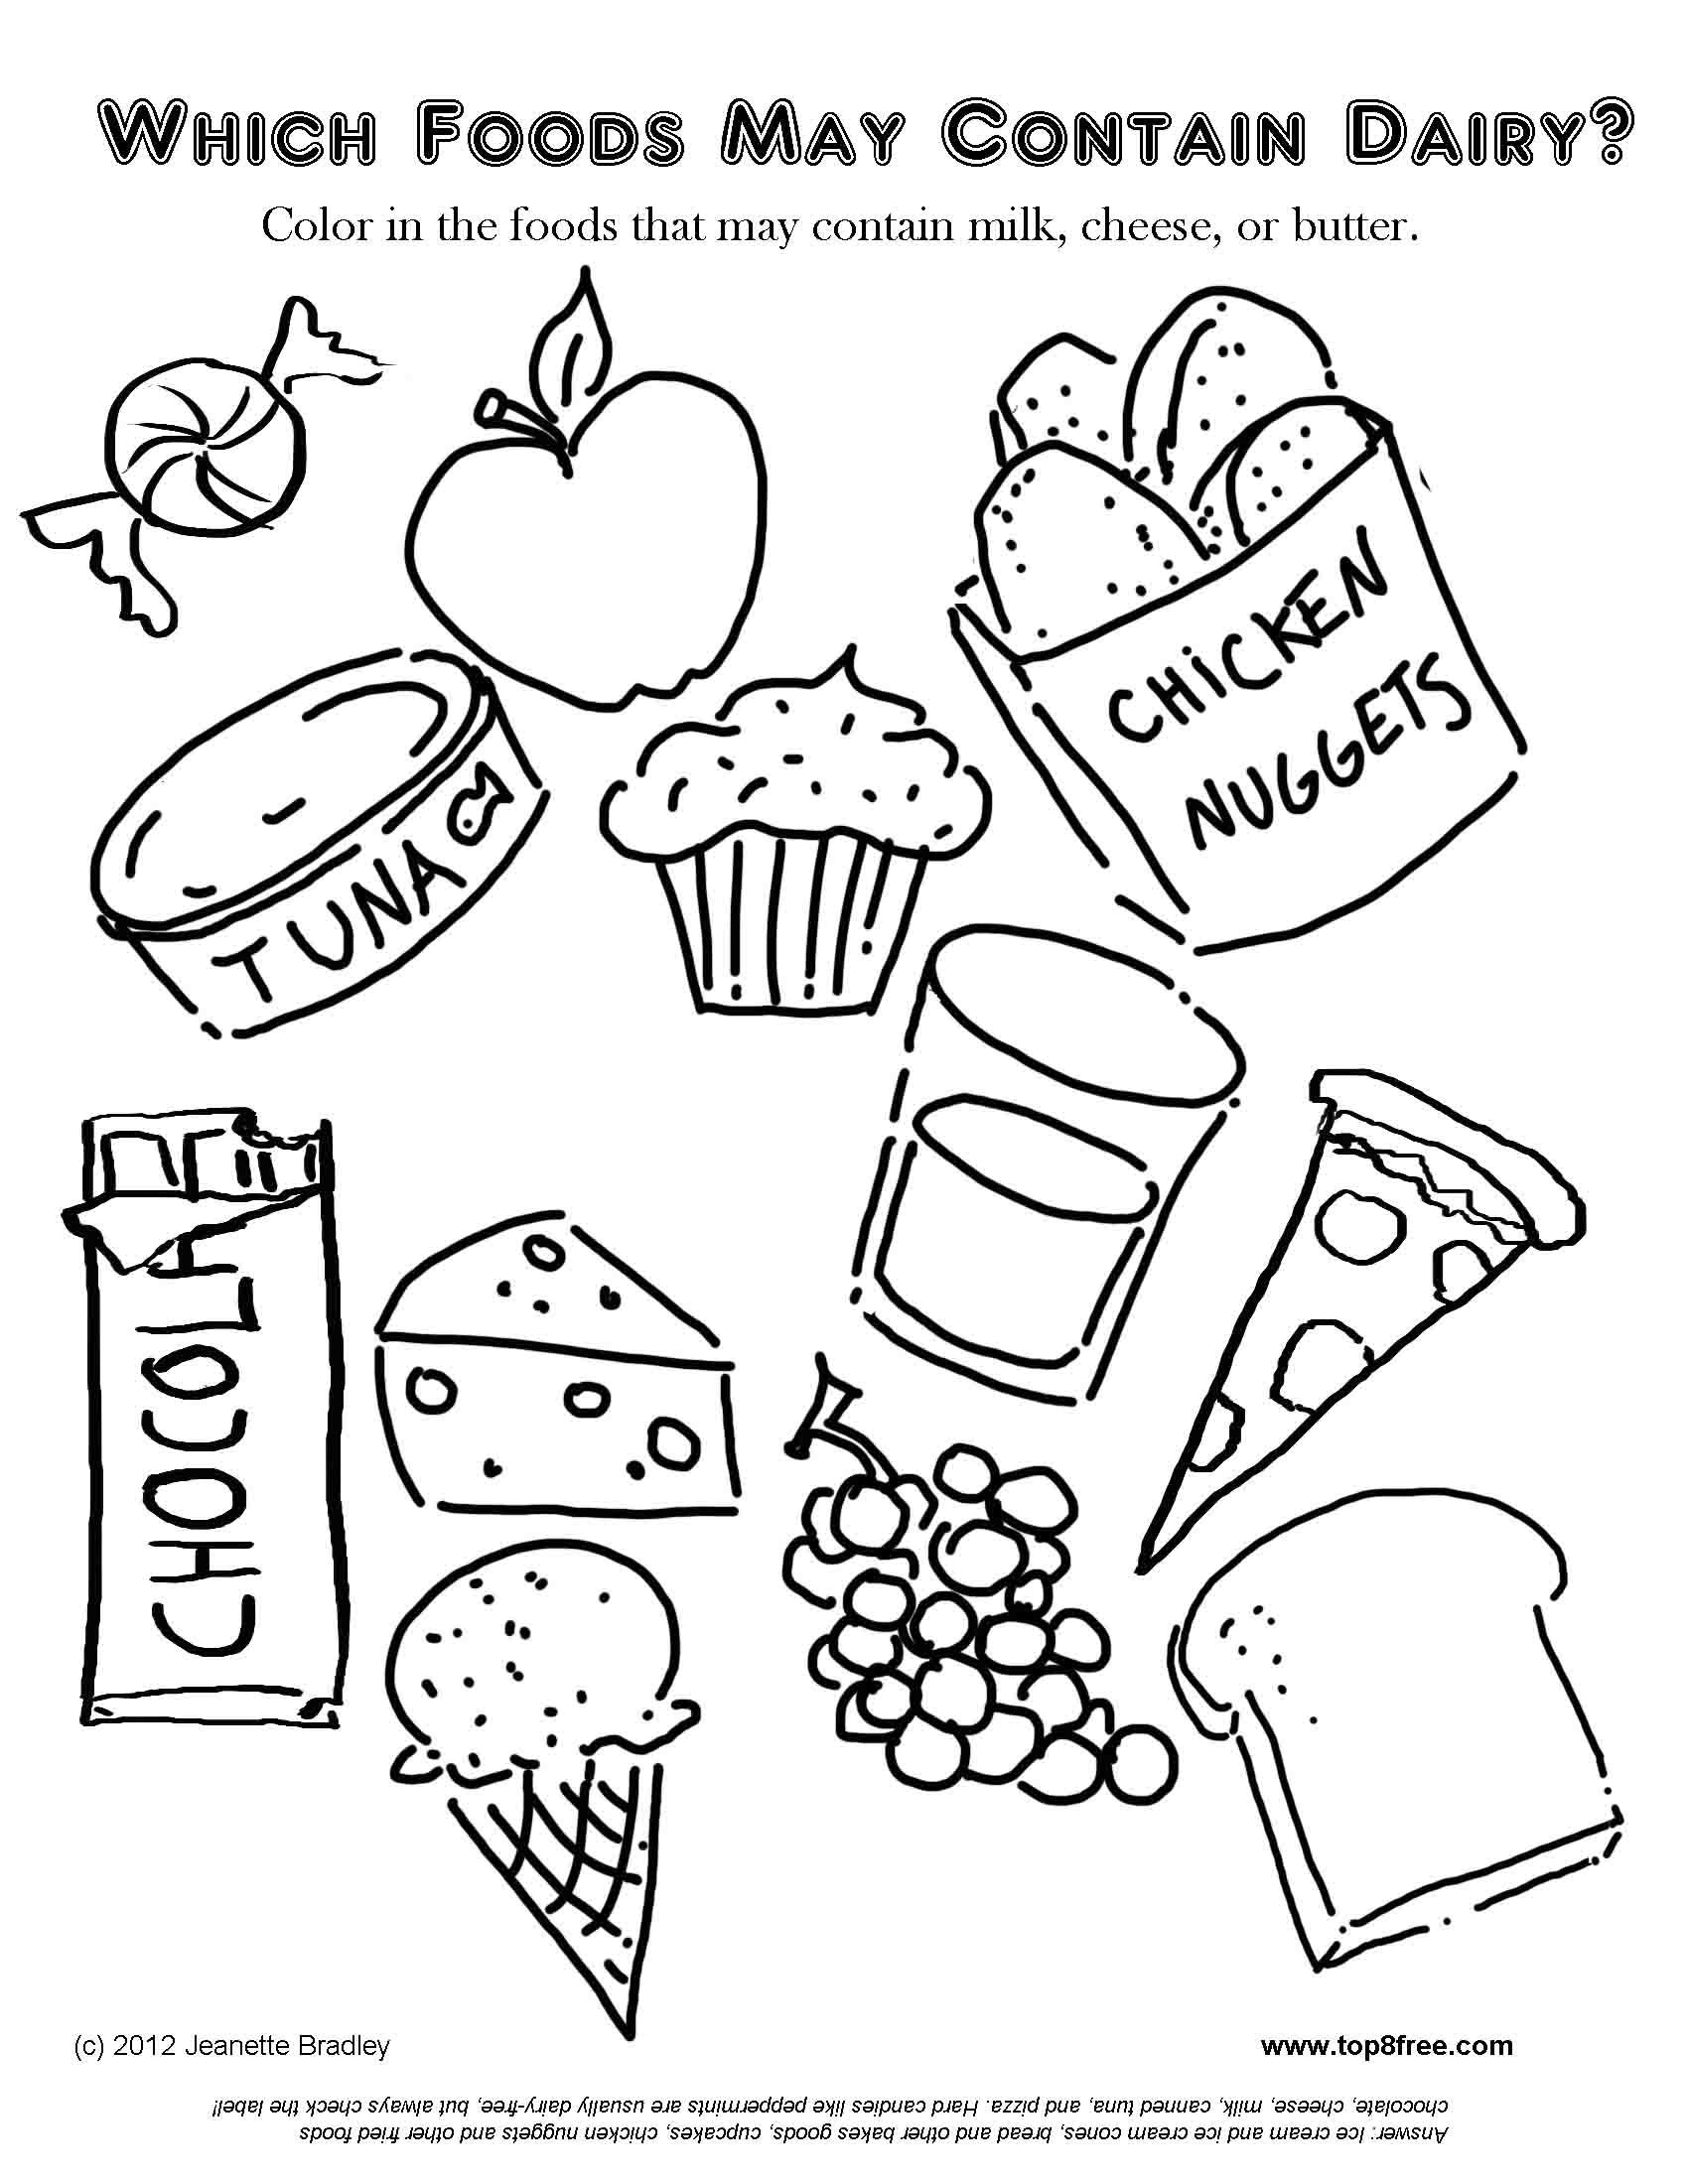 food allergy coloring pages for kids looking for diet tips food allergy coloring pages for kids looking for diet tips you ve